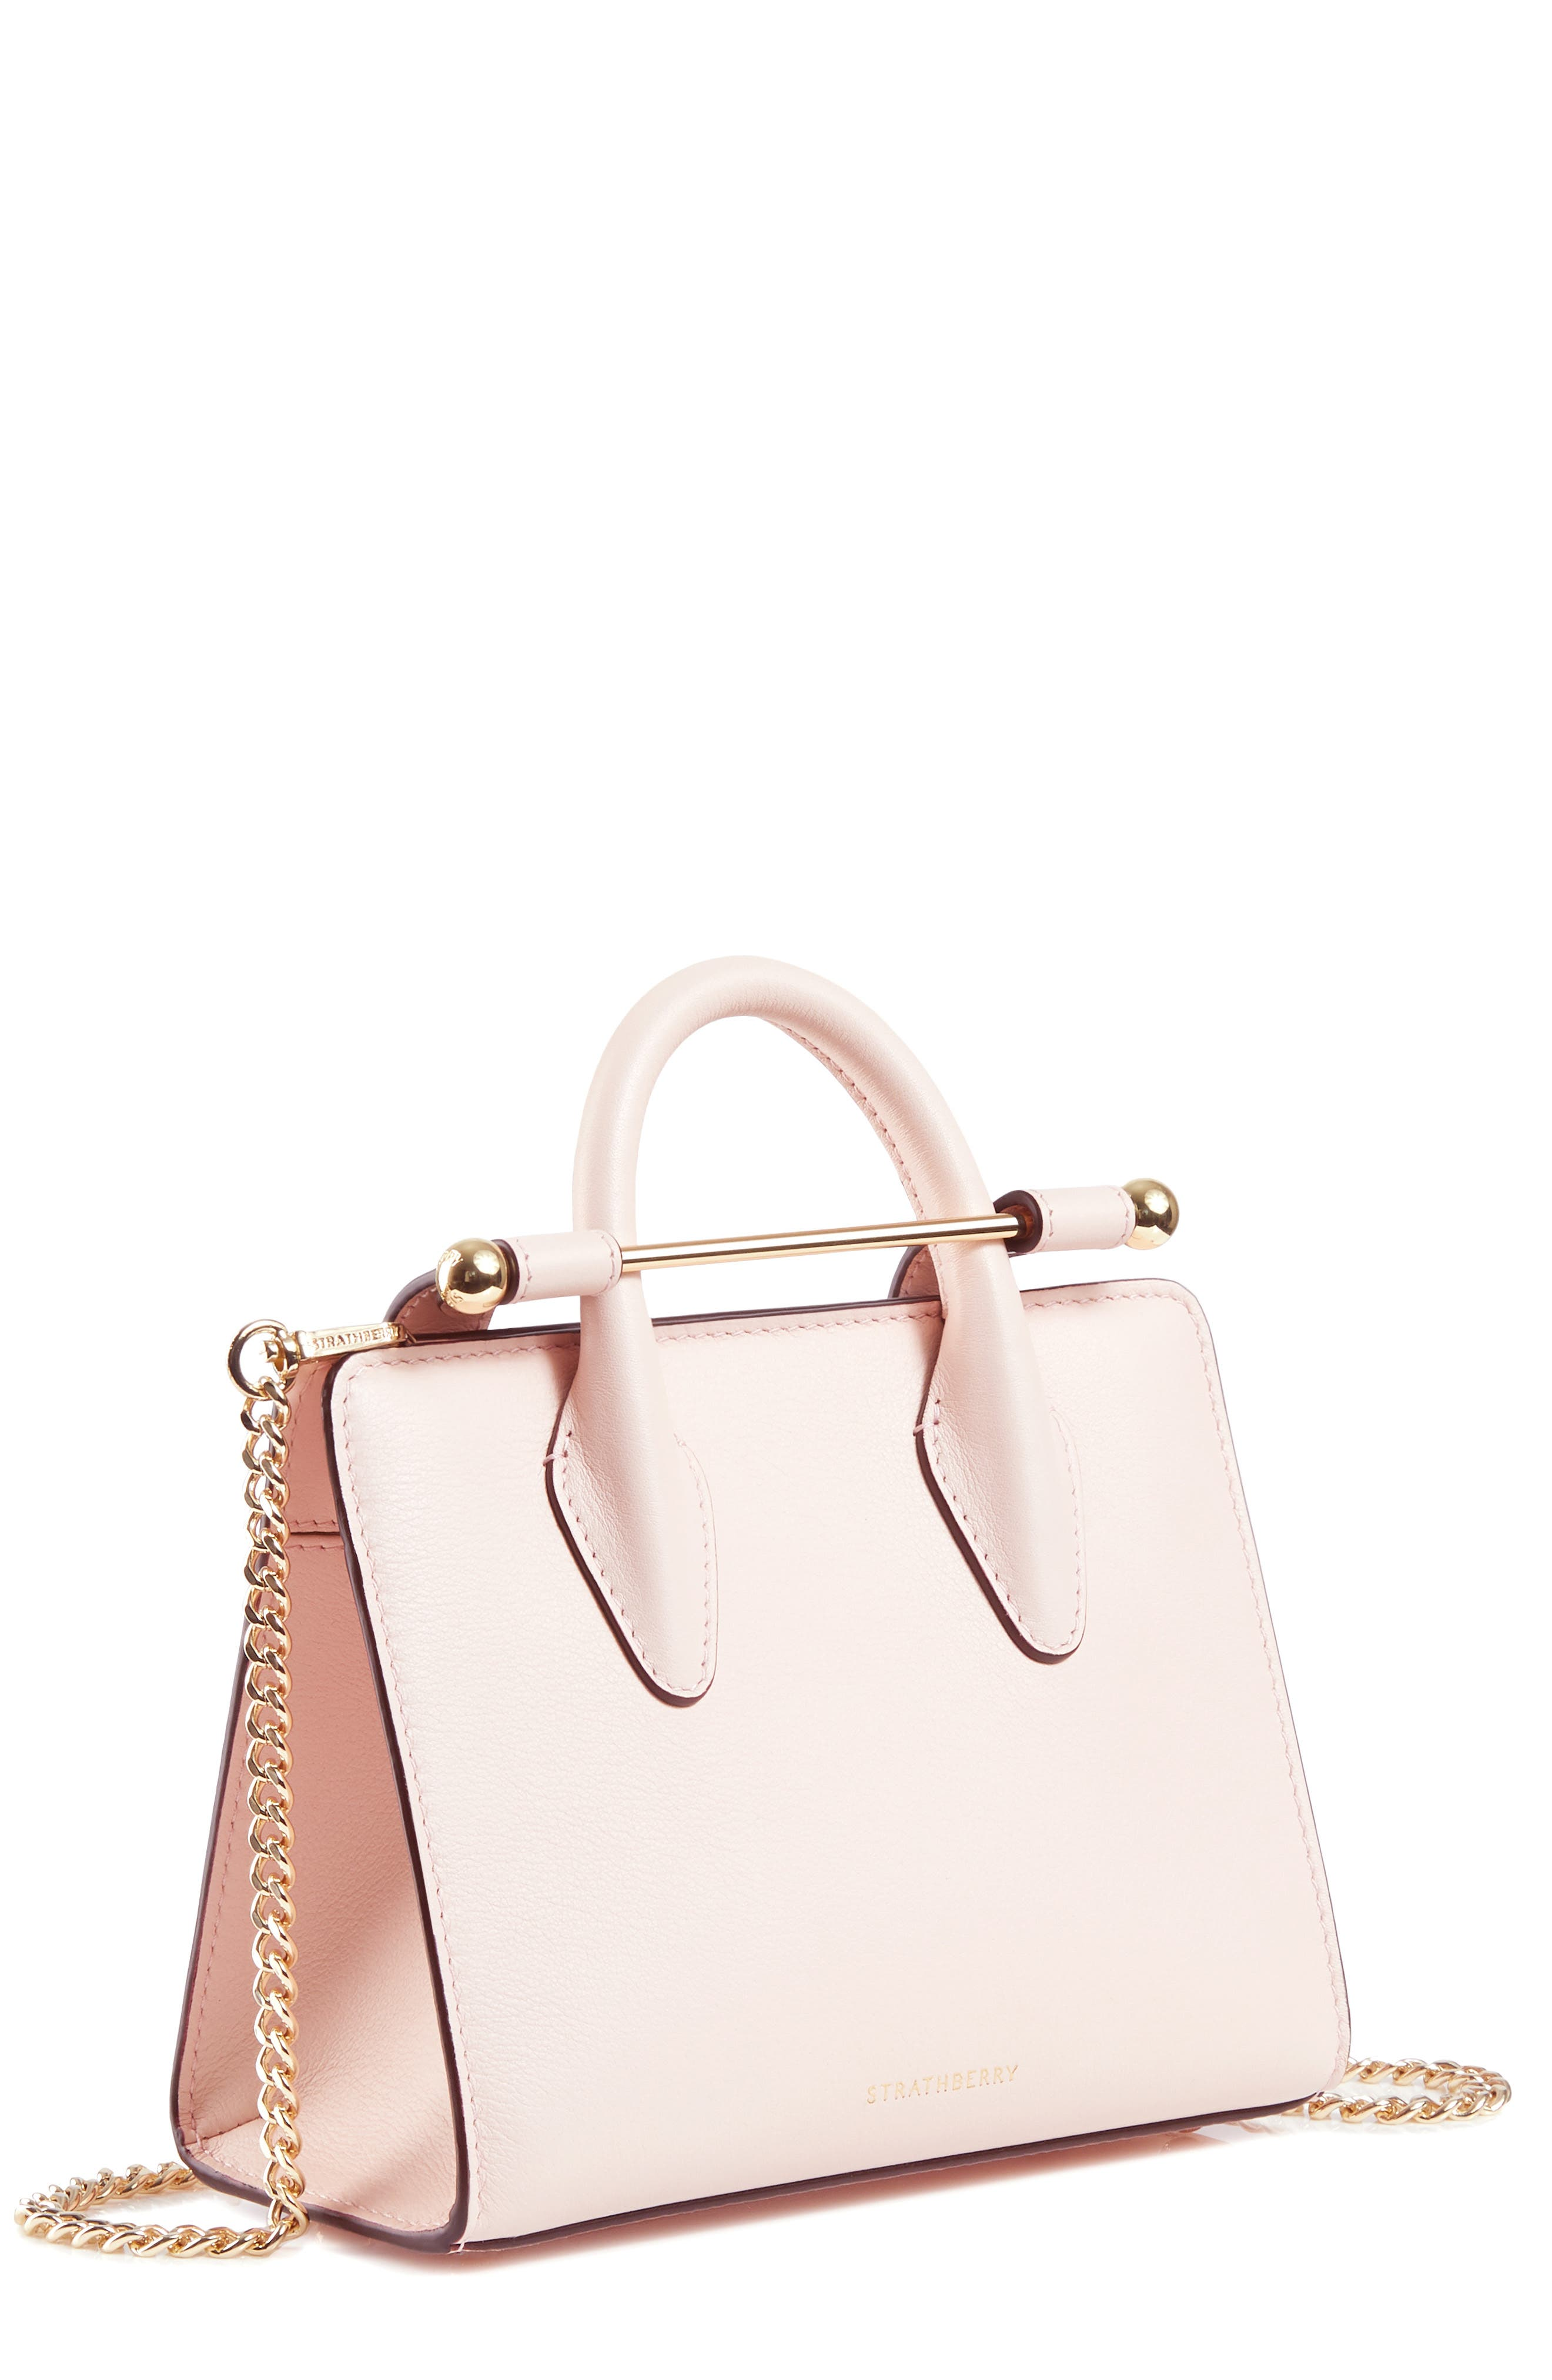 STRATHBERRY,                             Nano Leather Tote,                             Main thumbnail 1, color,                             BABY PINK